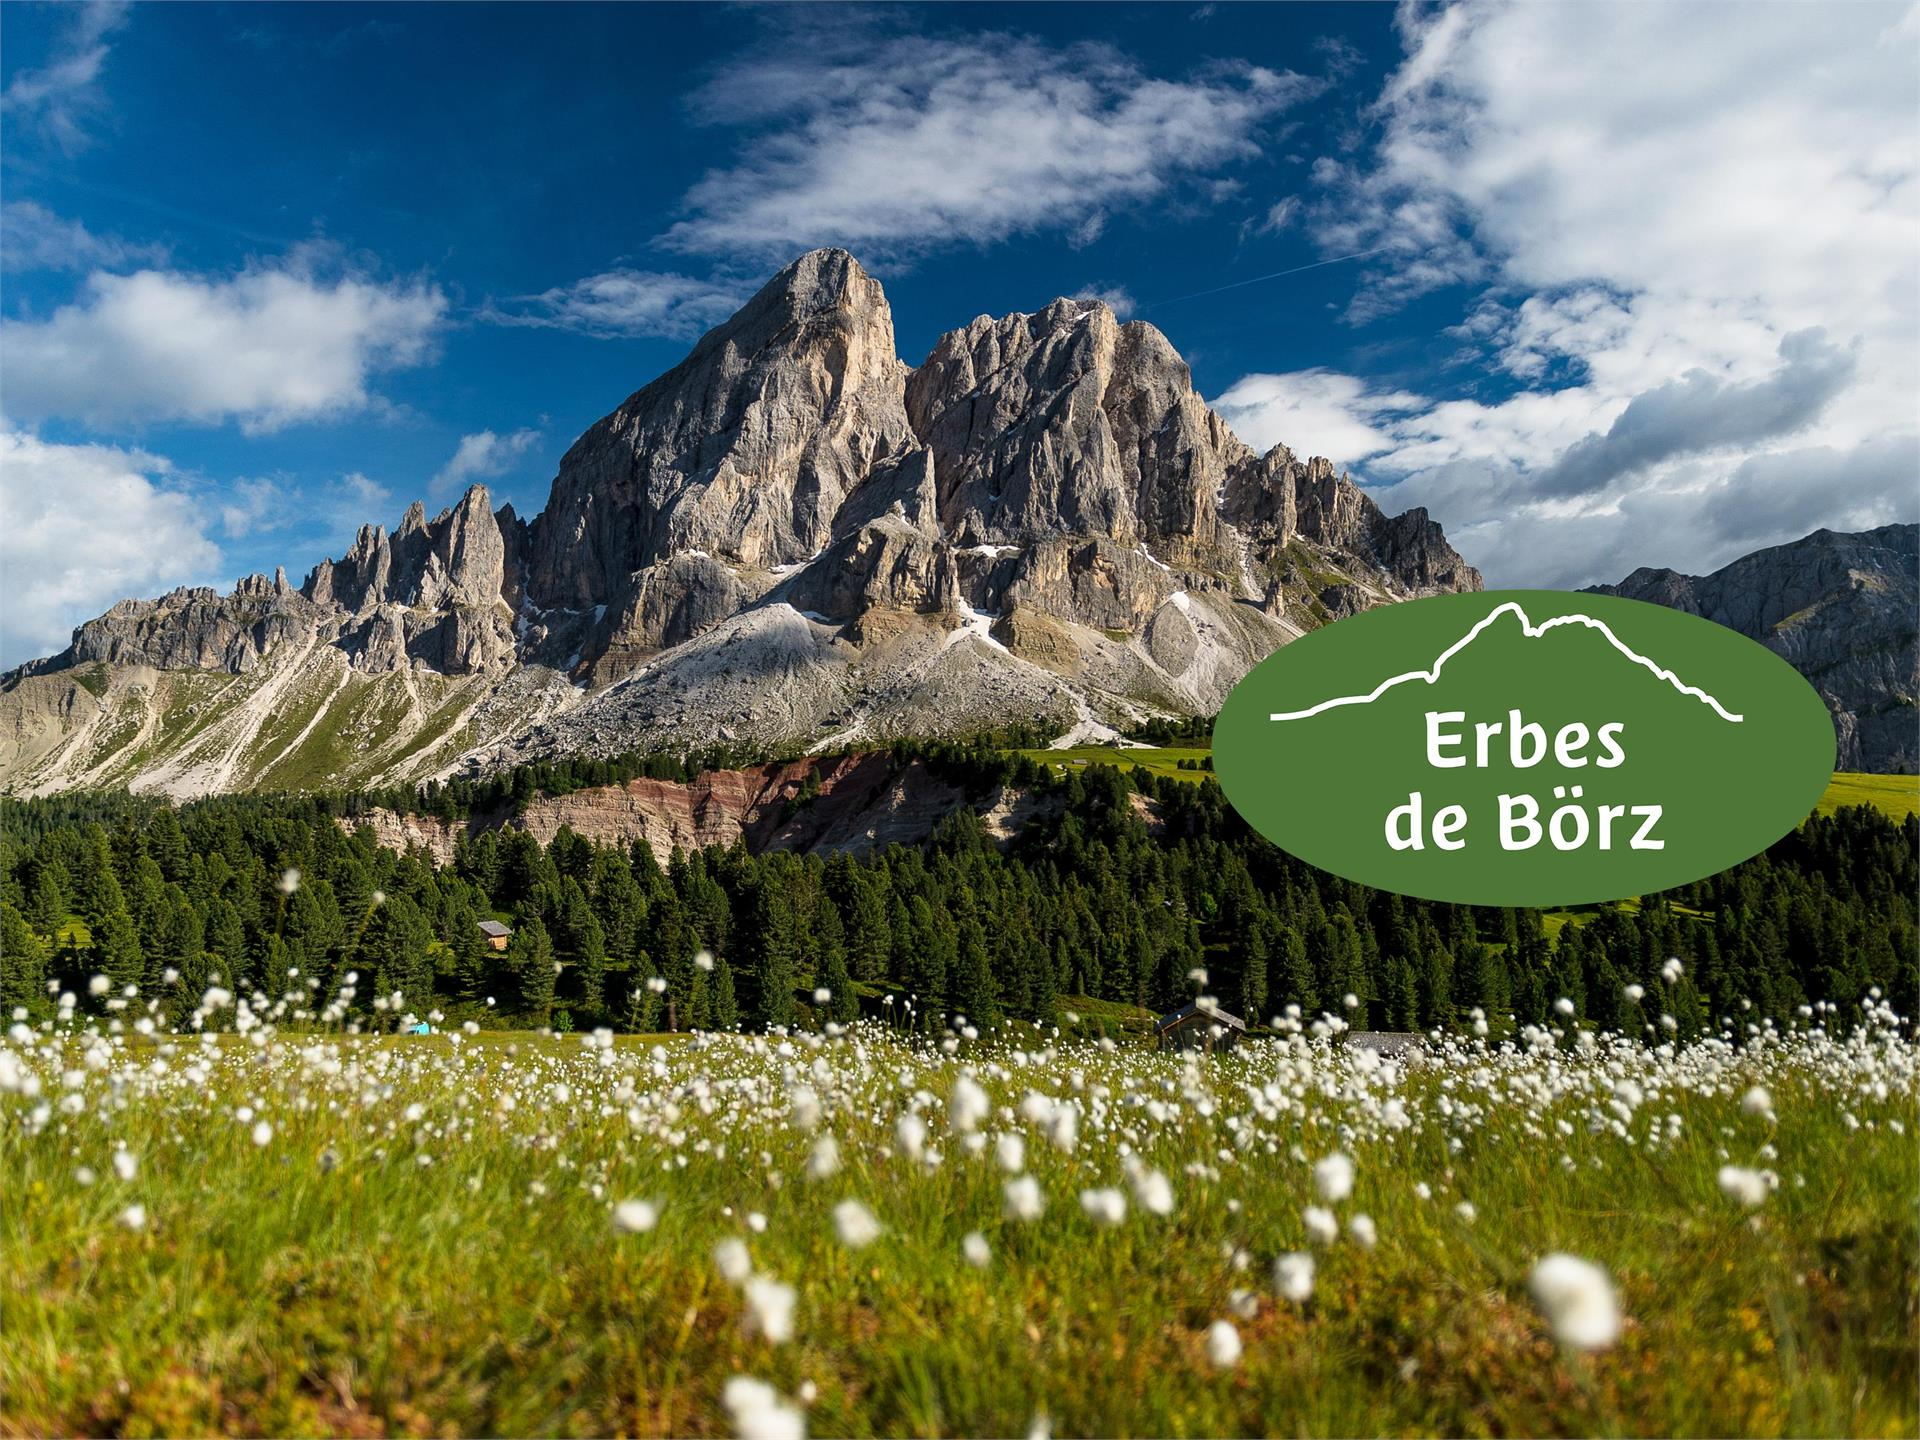 Erbes de Börz: The week full of flavours and aromas of local herbs